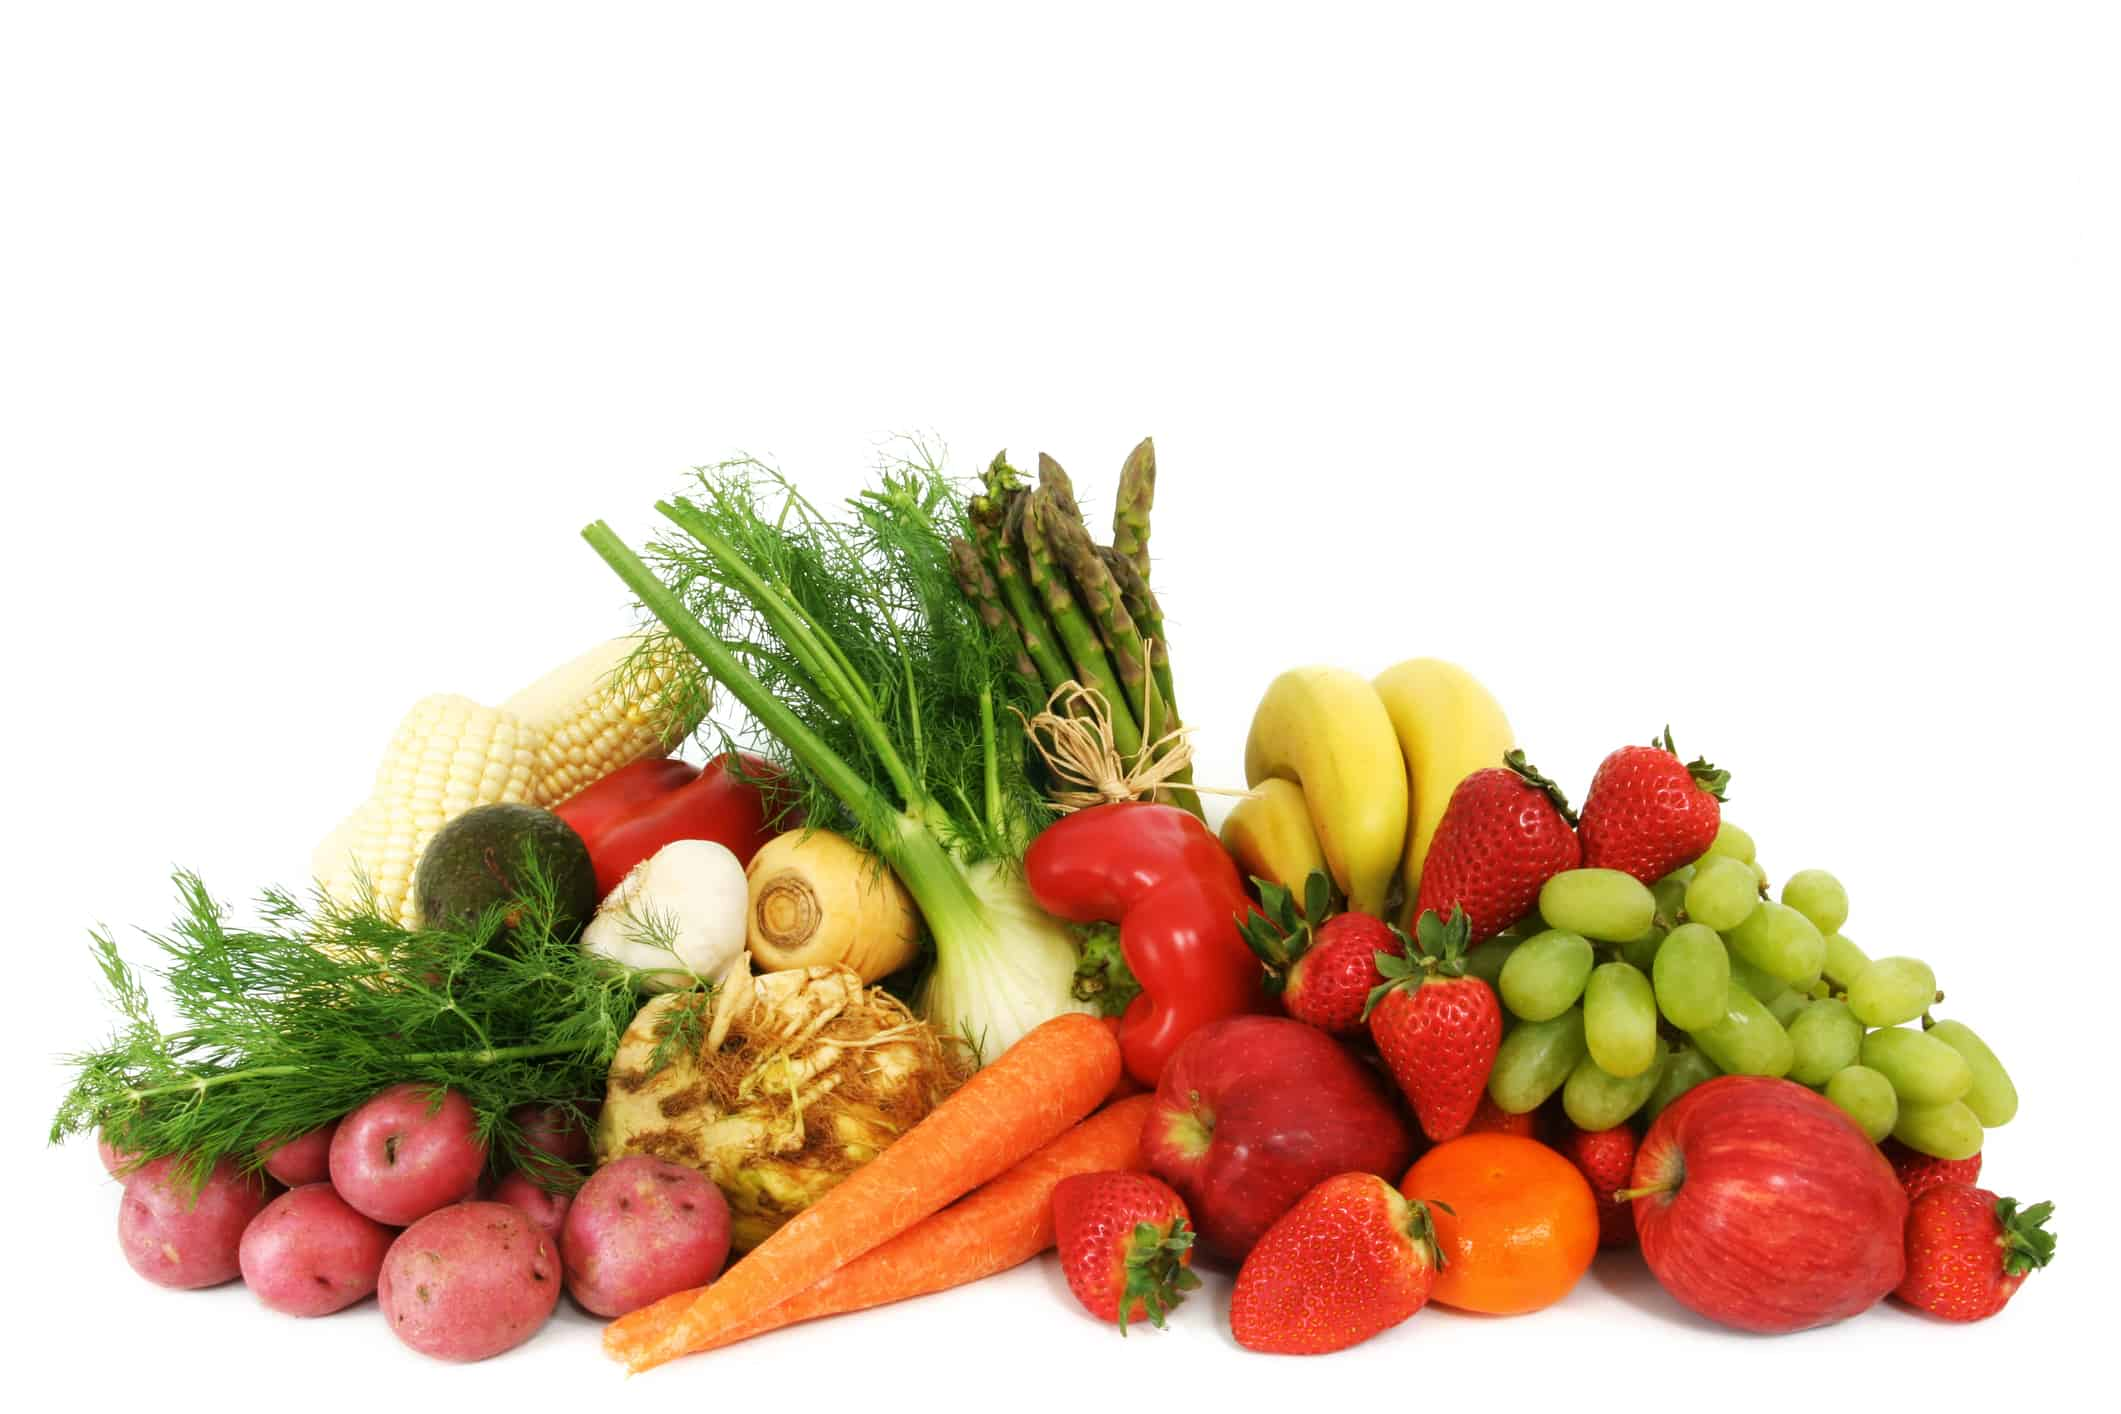 A pile of fresh, healthy fruits and vegetables isolated on white